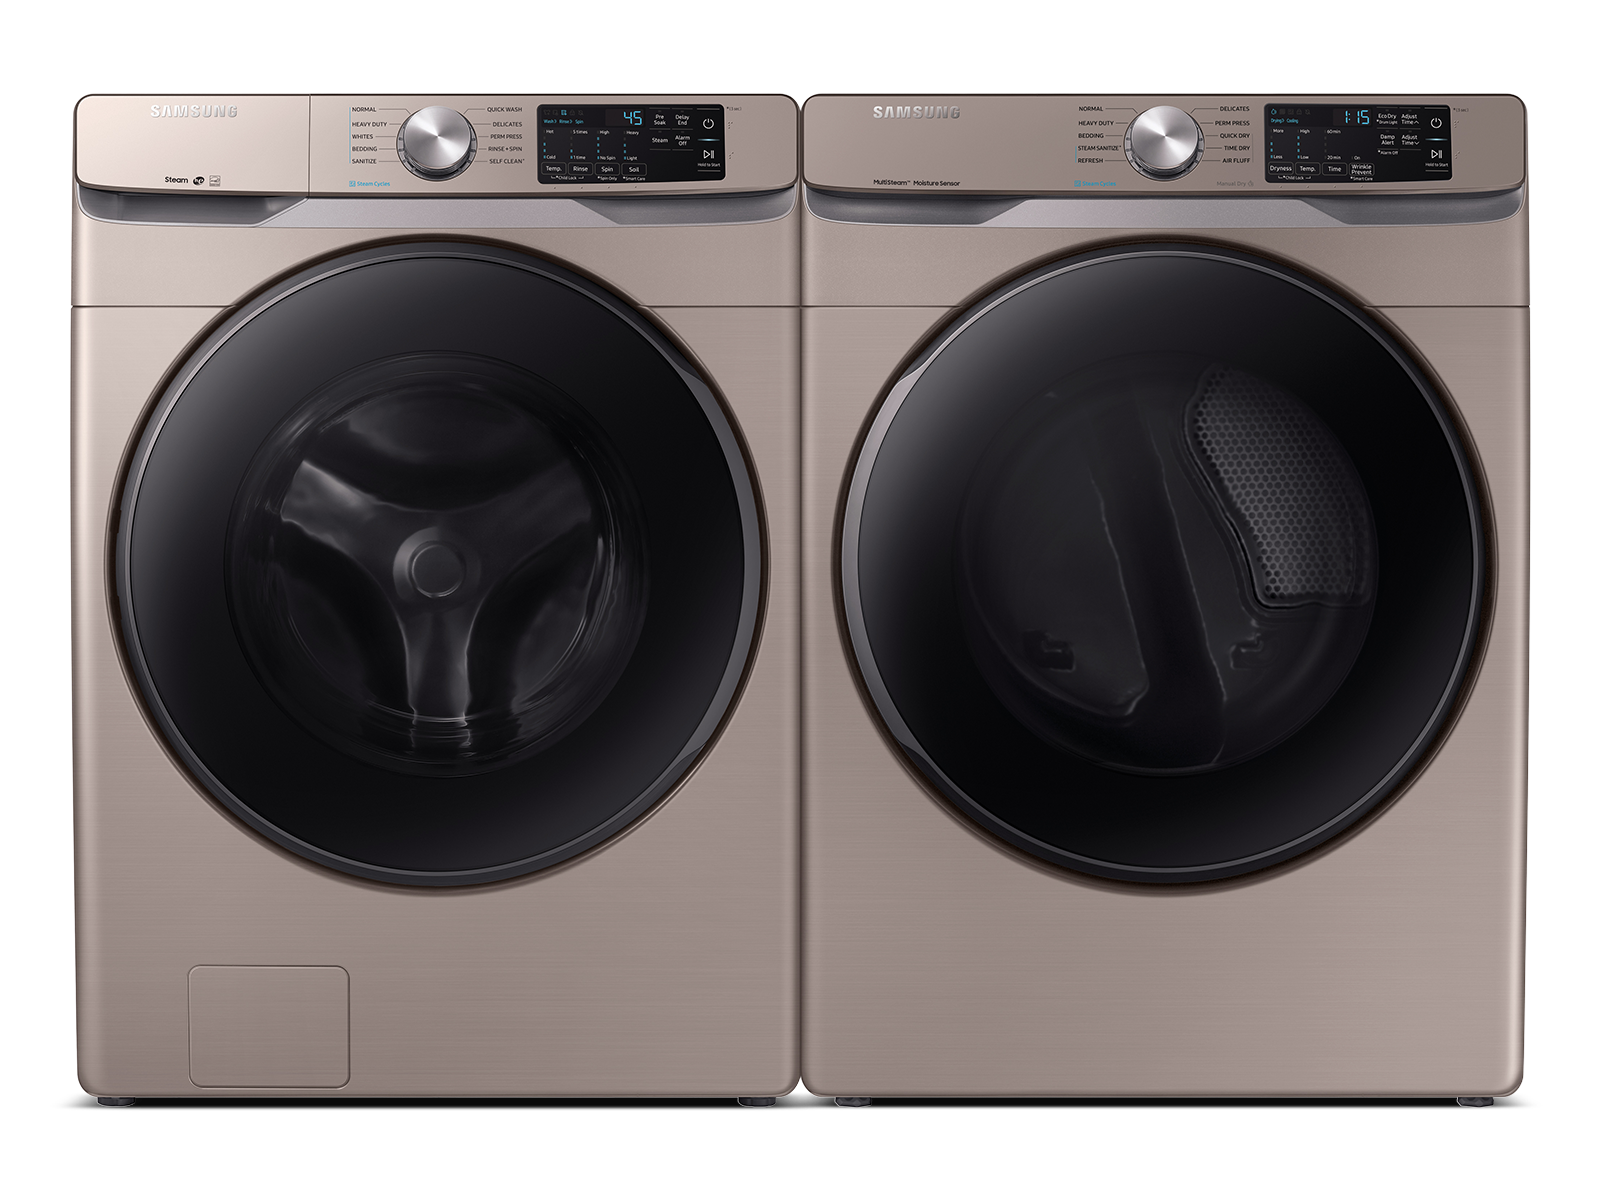 Samsung coupon: Samsung Front Load Washer & Dryer Set with Steam and Sensor Dry in Champagne(BNDL-1603922704145)